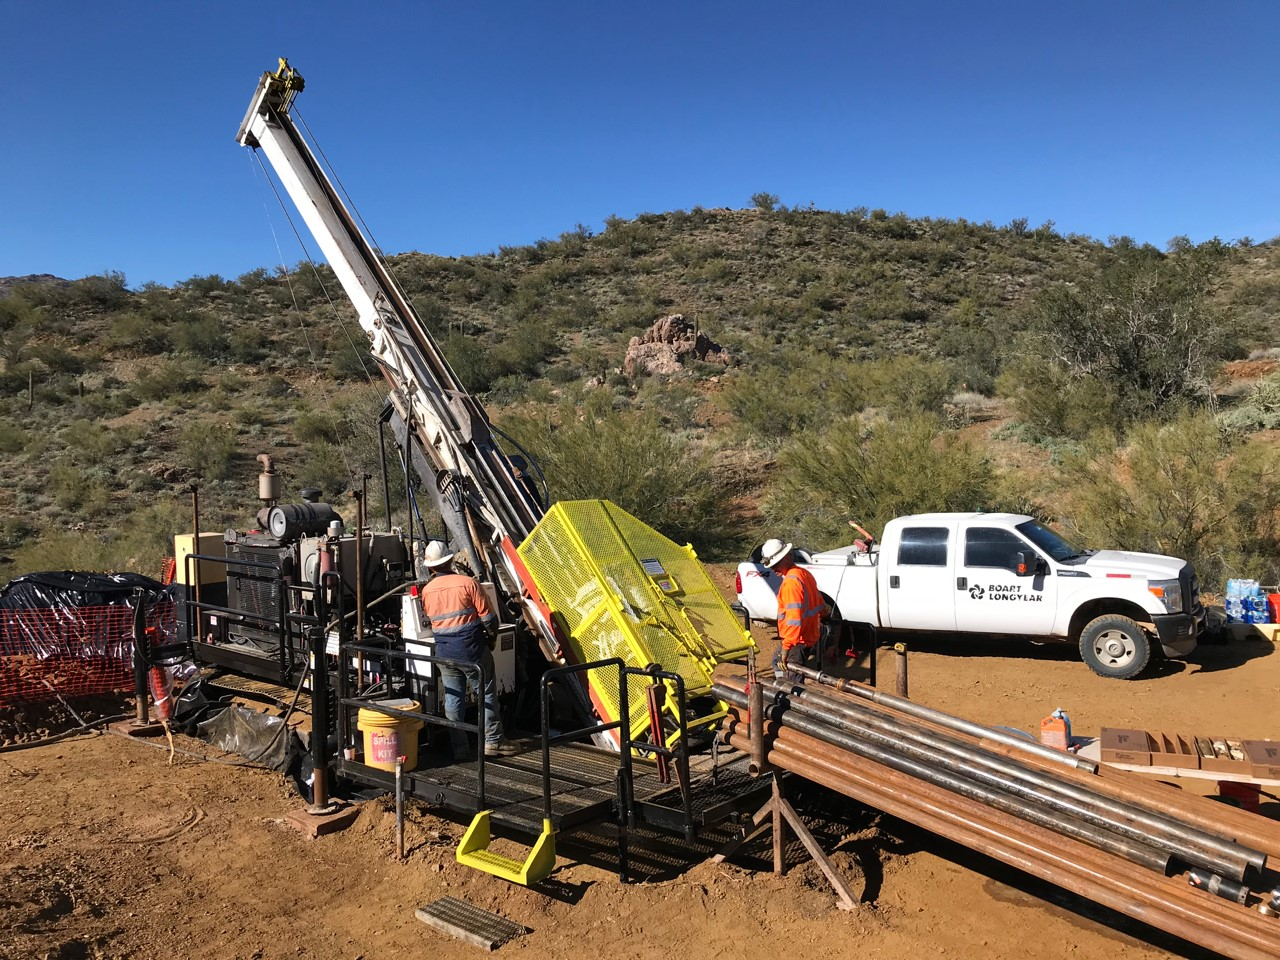 Arizona Metals Corp Announces Commencement of Fully-Funded 6,000 Metre Surface Exploration Program at its Kay Mine VMS Project in Arizona